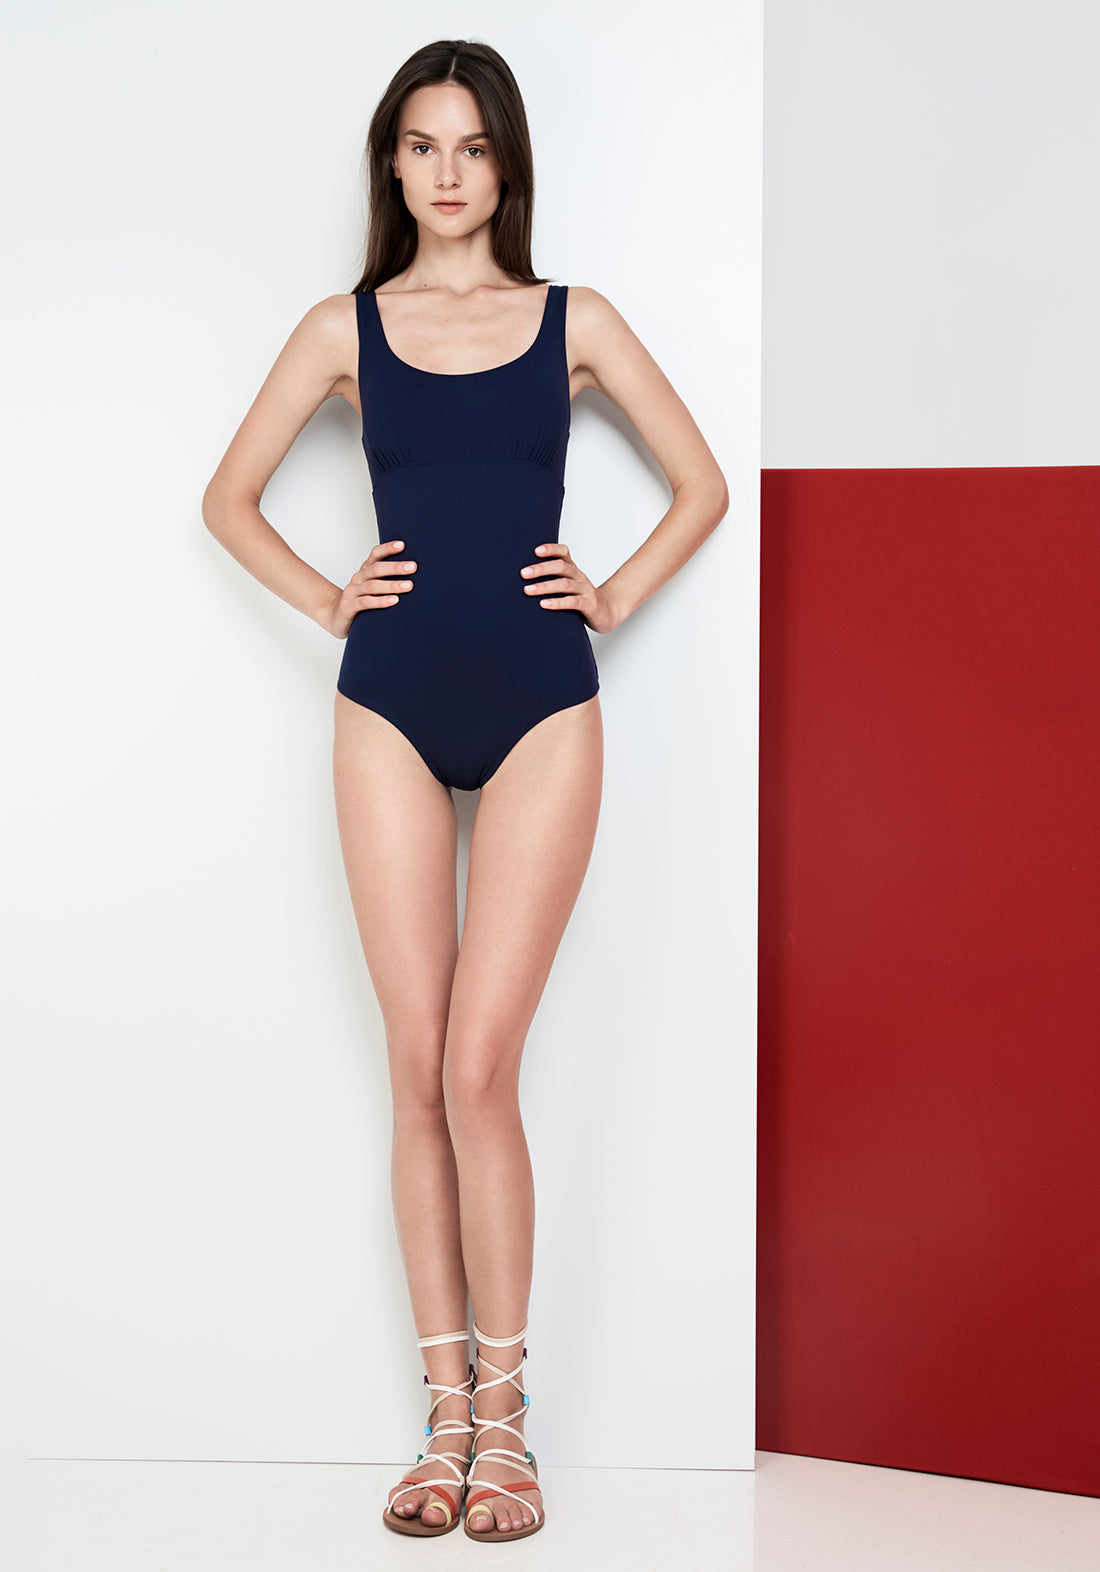 Caprice d'Été Retro Swimsuit in Navy